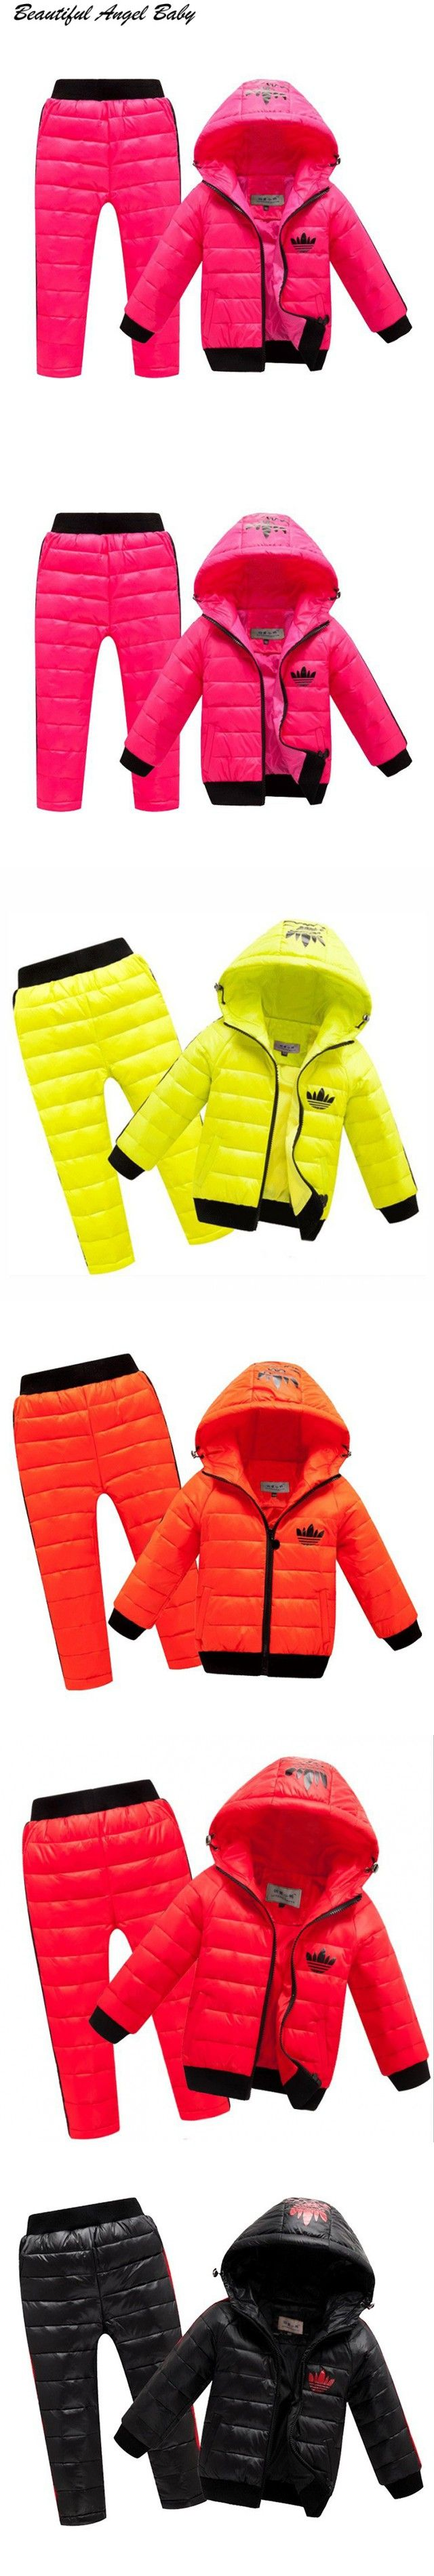 2016 Hoodies Down Jacket + Trousers Waterproof Snow Warm kids Clothes New Children Boys girls Clothing sets 2-8year